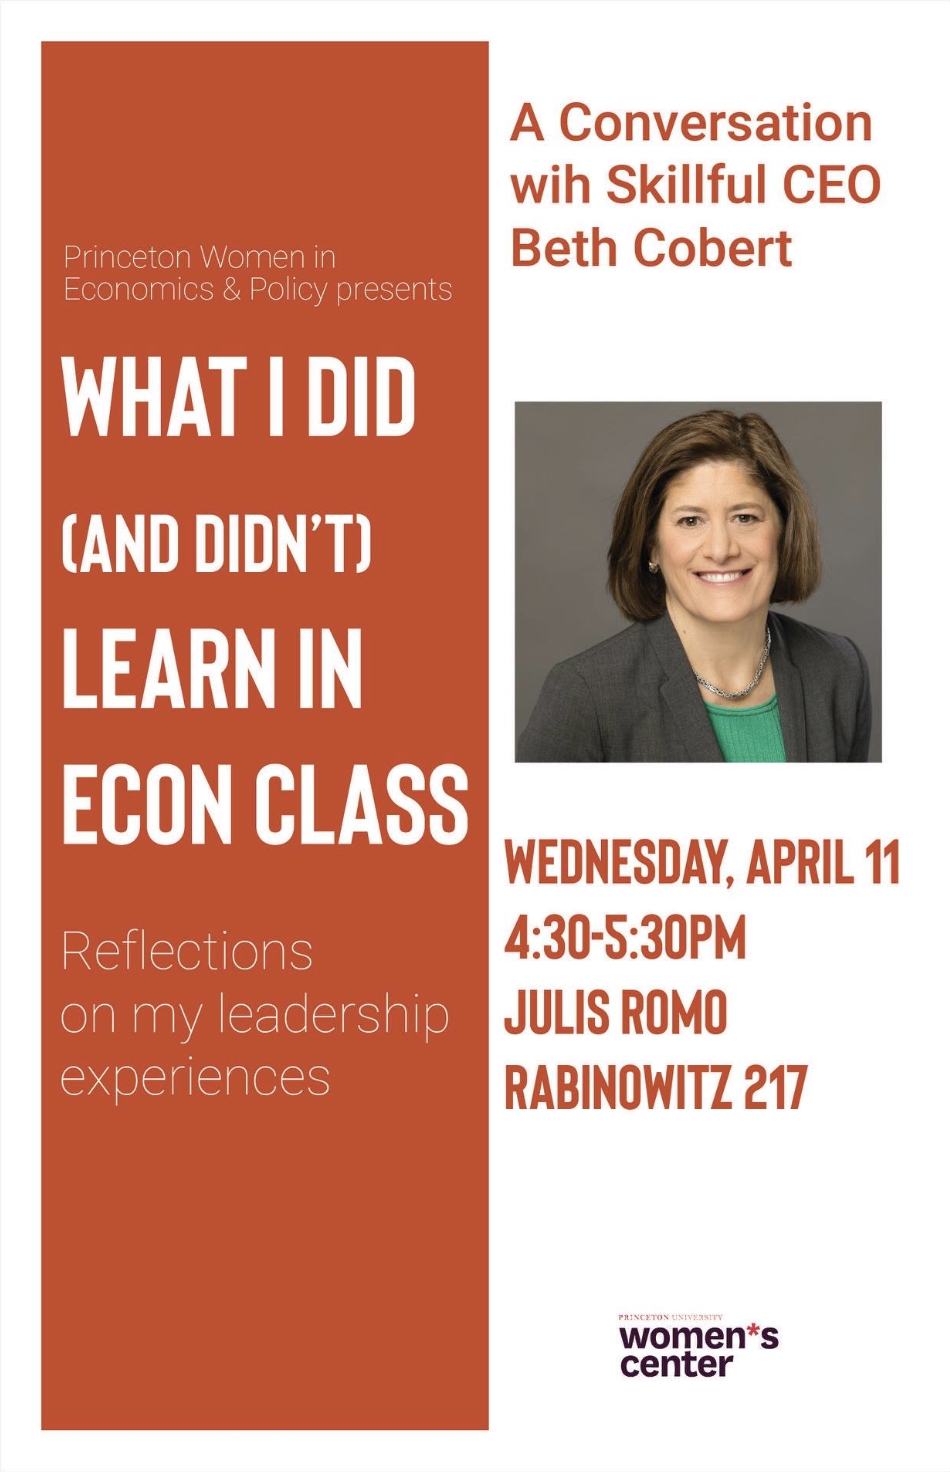 "What I Did (and Didn't) Learn in Econ Class - Princeton Women in Economics & Policy is excited to invite you to our next talk on April 11th, ""What I did (and didn't) learn in Econ class: Reflections on my leadership experiences"" with Skillful CEO Beth Cobert! The discussion will focus on leadership and lessons she has learned as a senior executive in business, government, and the non-profit sector in addition to other insights she has gained throughout her extensive career."